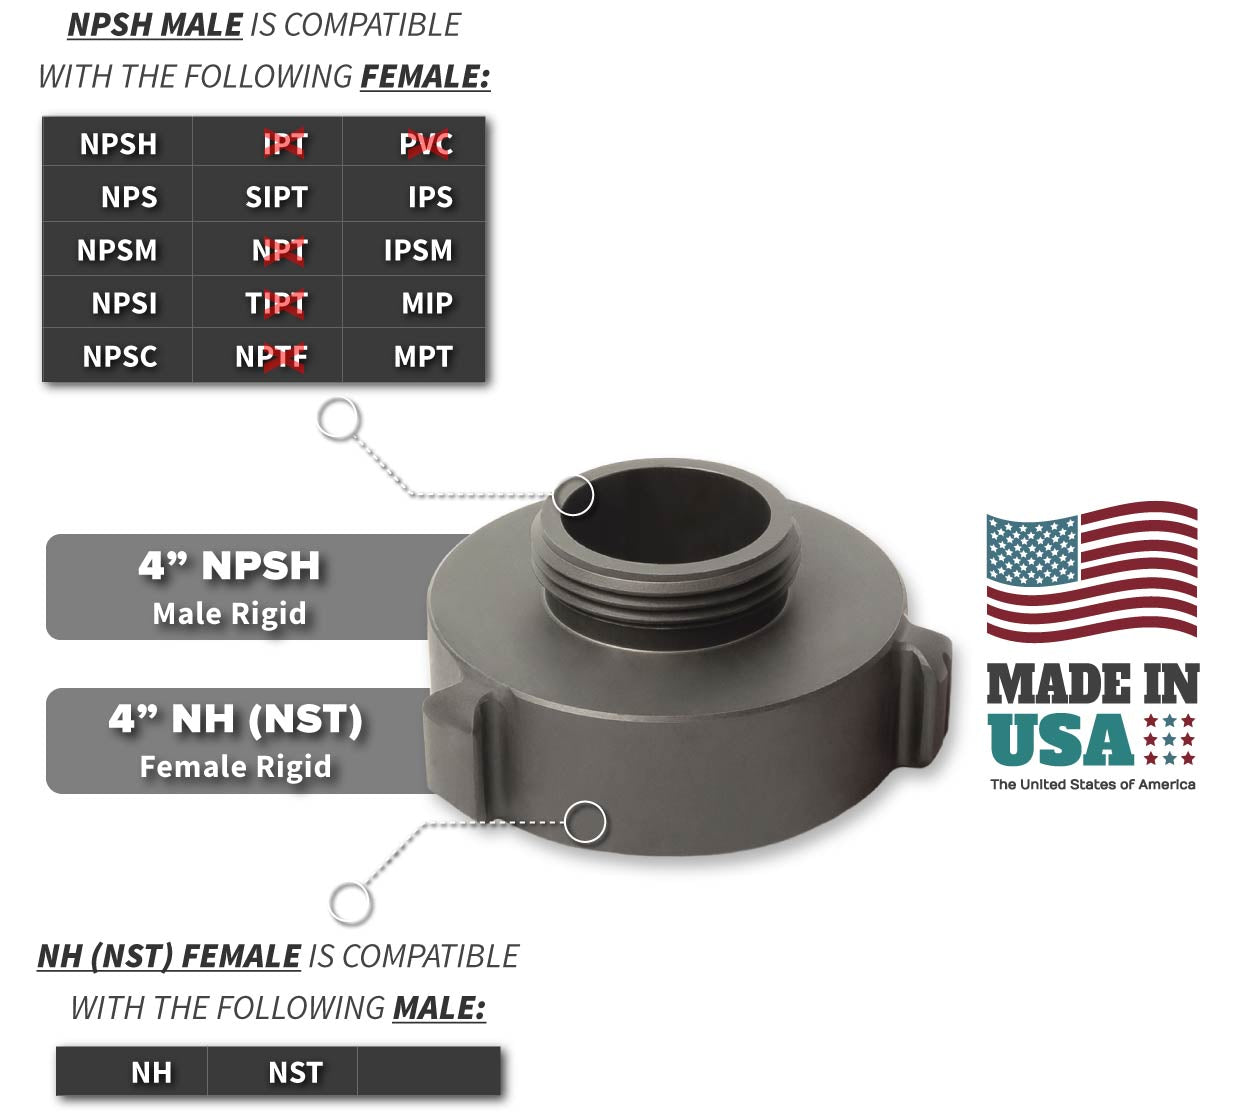 4 Inch NH-NST Female x 4 Inch NPSH Male Compatibility Thread Chart